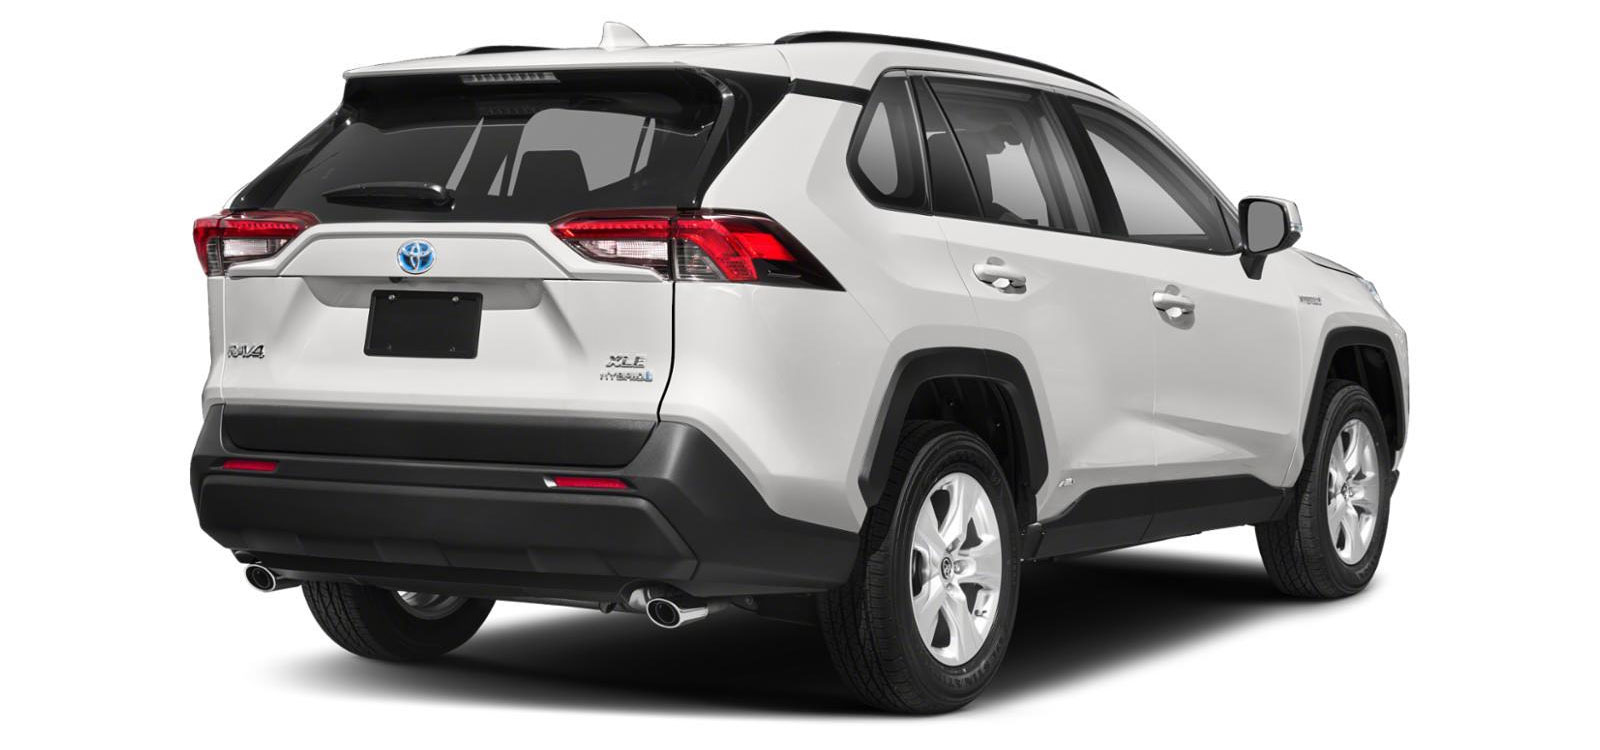 2019 Toyota Rav4 Backup Camera Recall